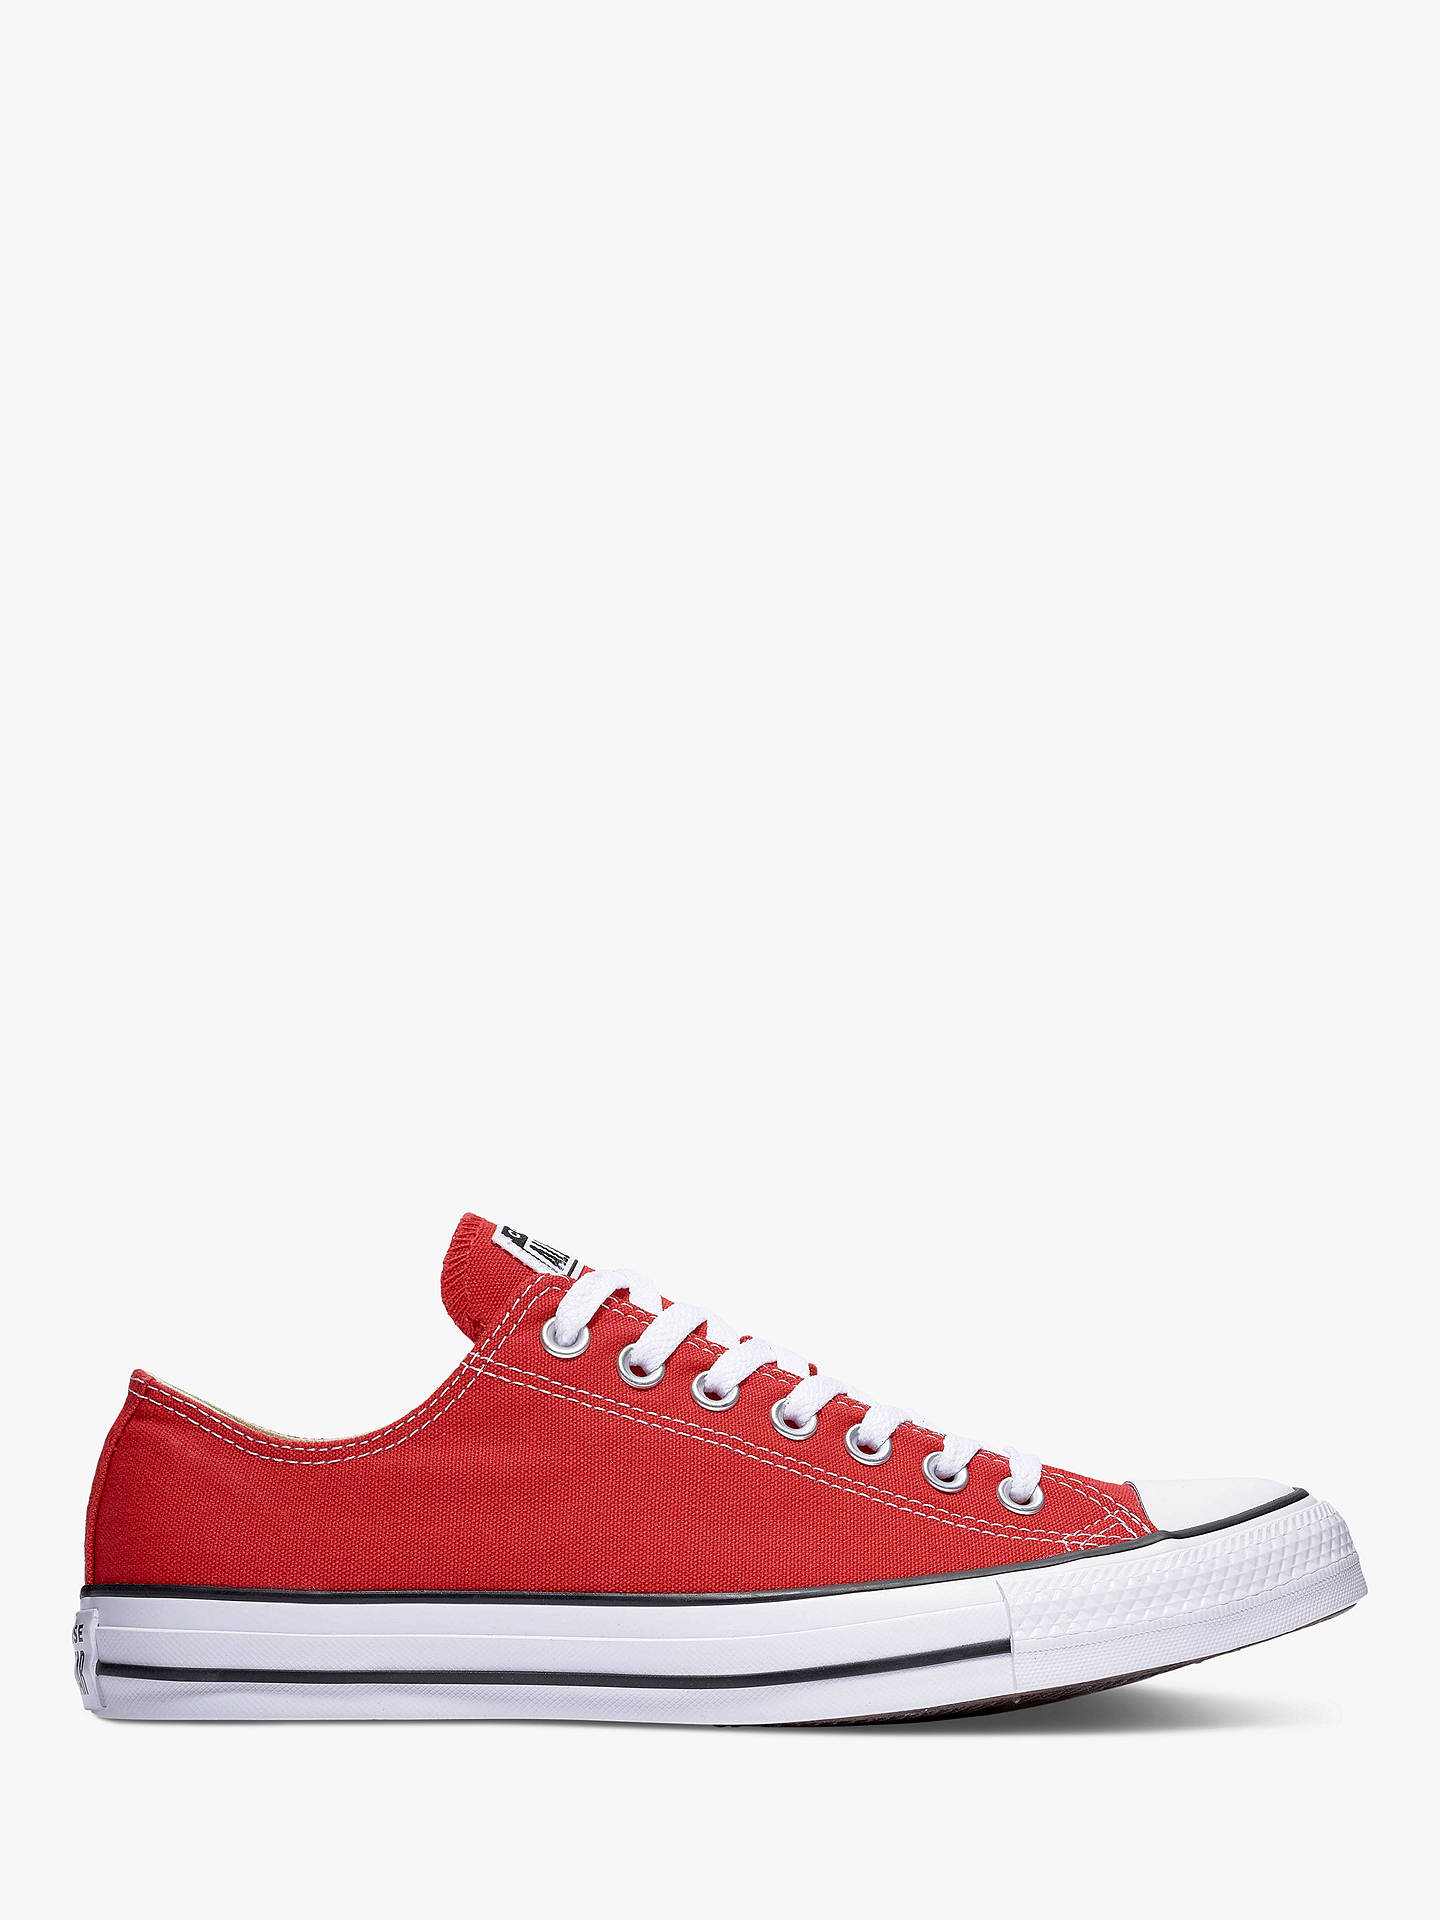 9592e8c76371 Buy Converse Chuck Taylor All Star Ox Trainers